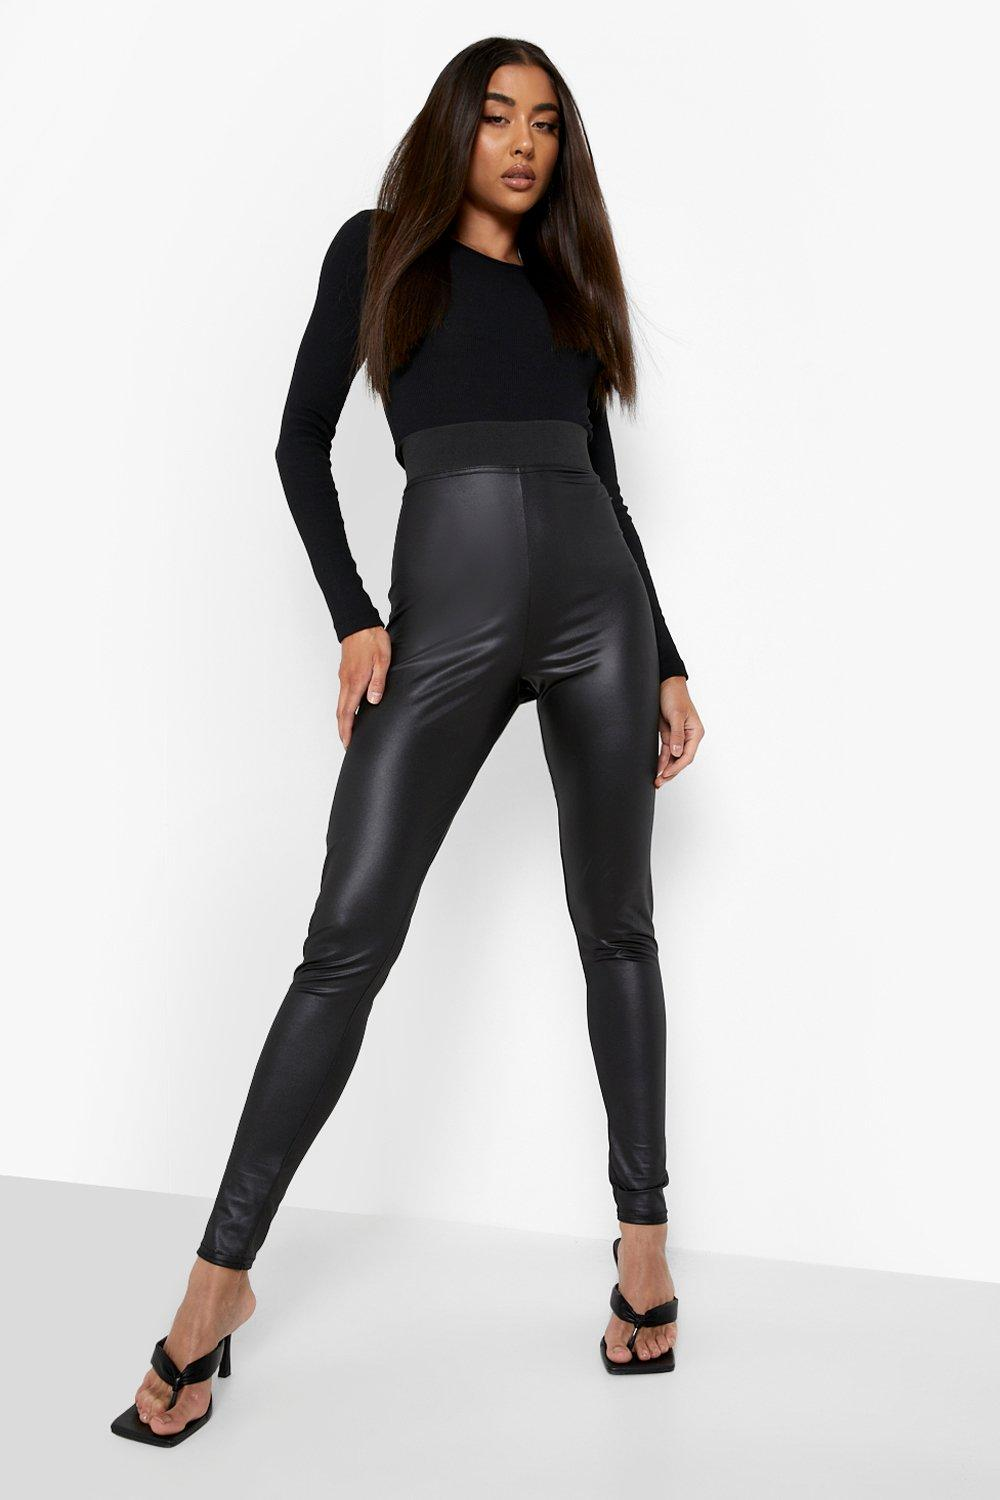 latest style of 2019 exceptional range of styles and colors details for Cropped High Waist Wet Look Leggings | Boohoo